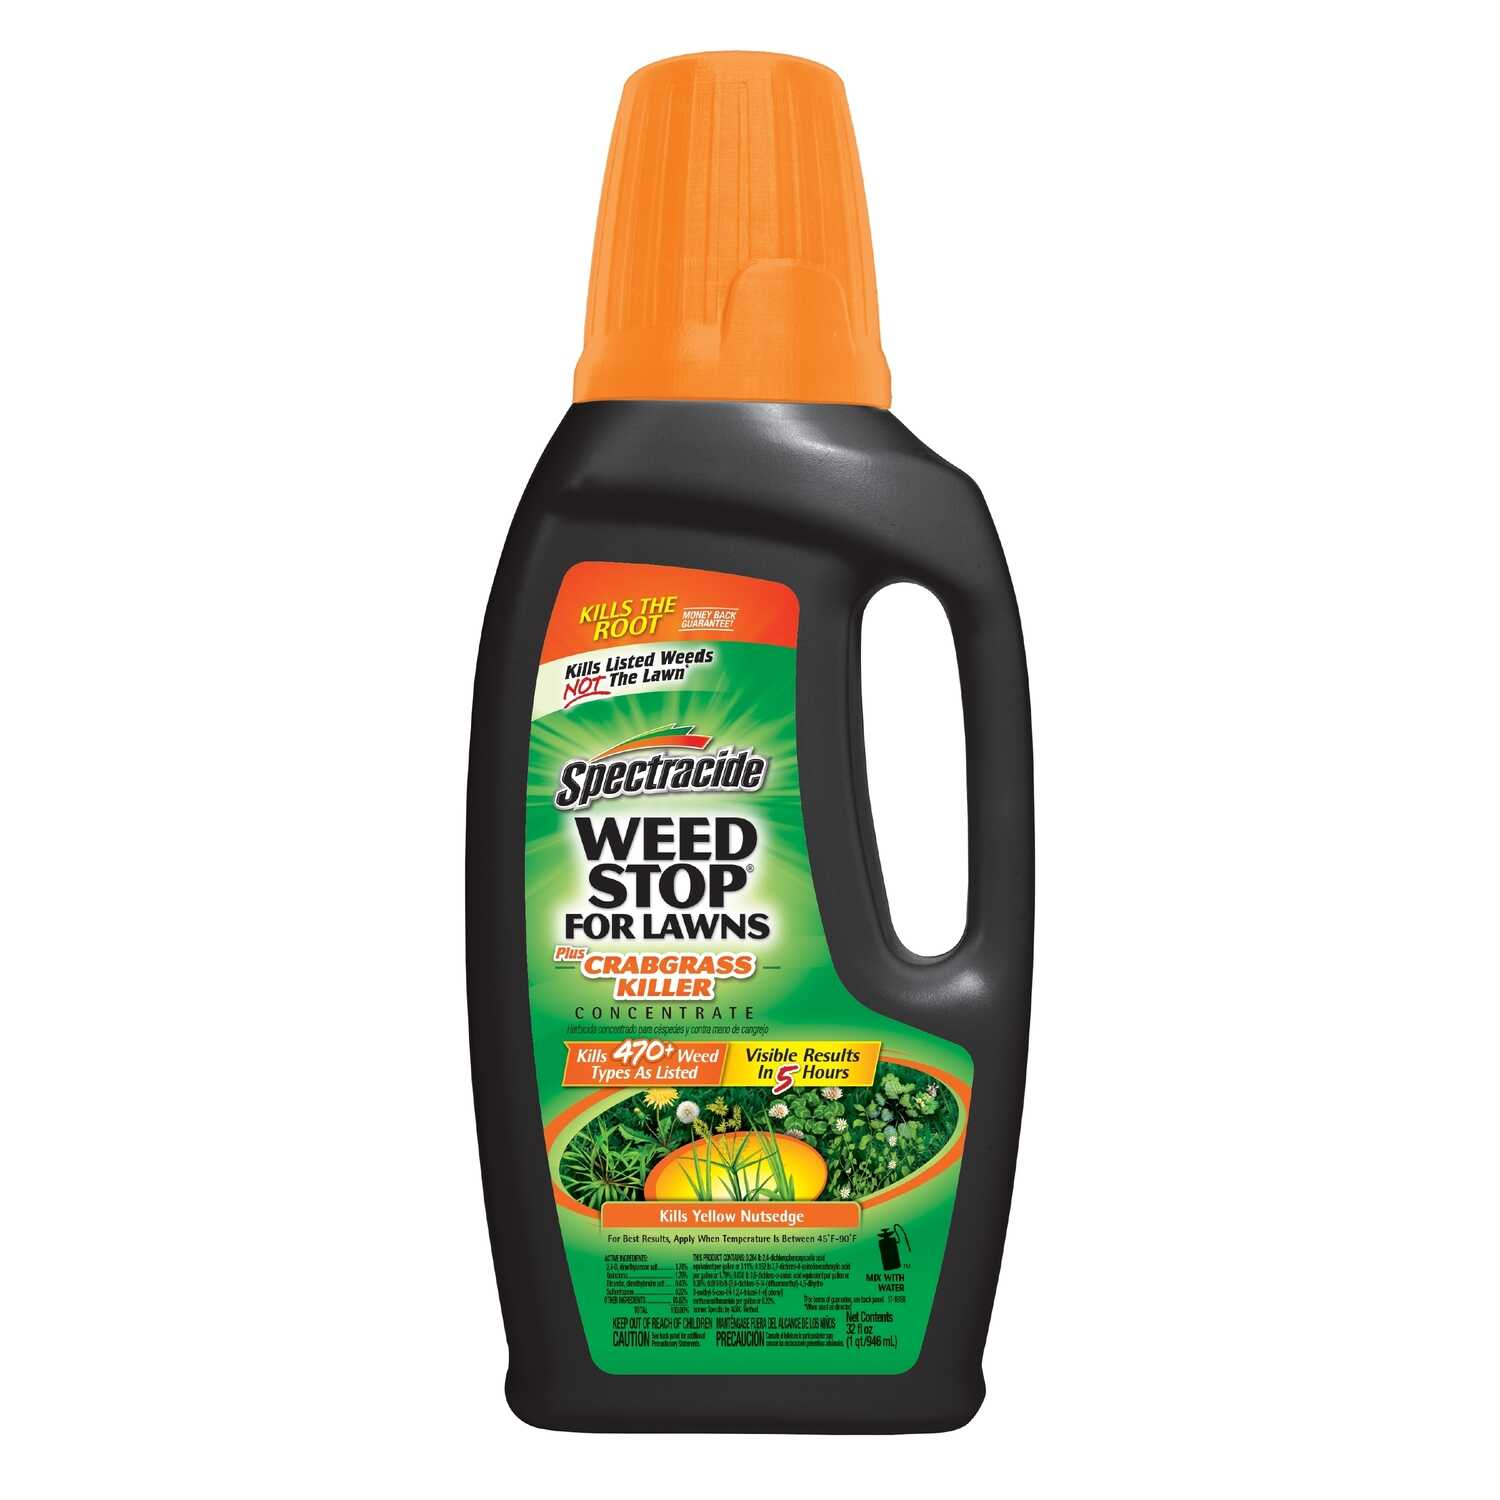 Spectracide  Weed Stop  Weed and Crabgrass Killer  Concentrate  32 oz.